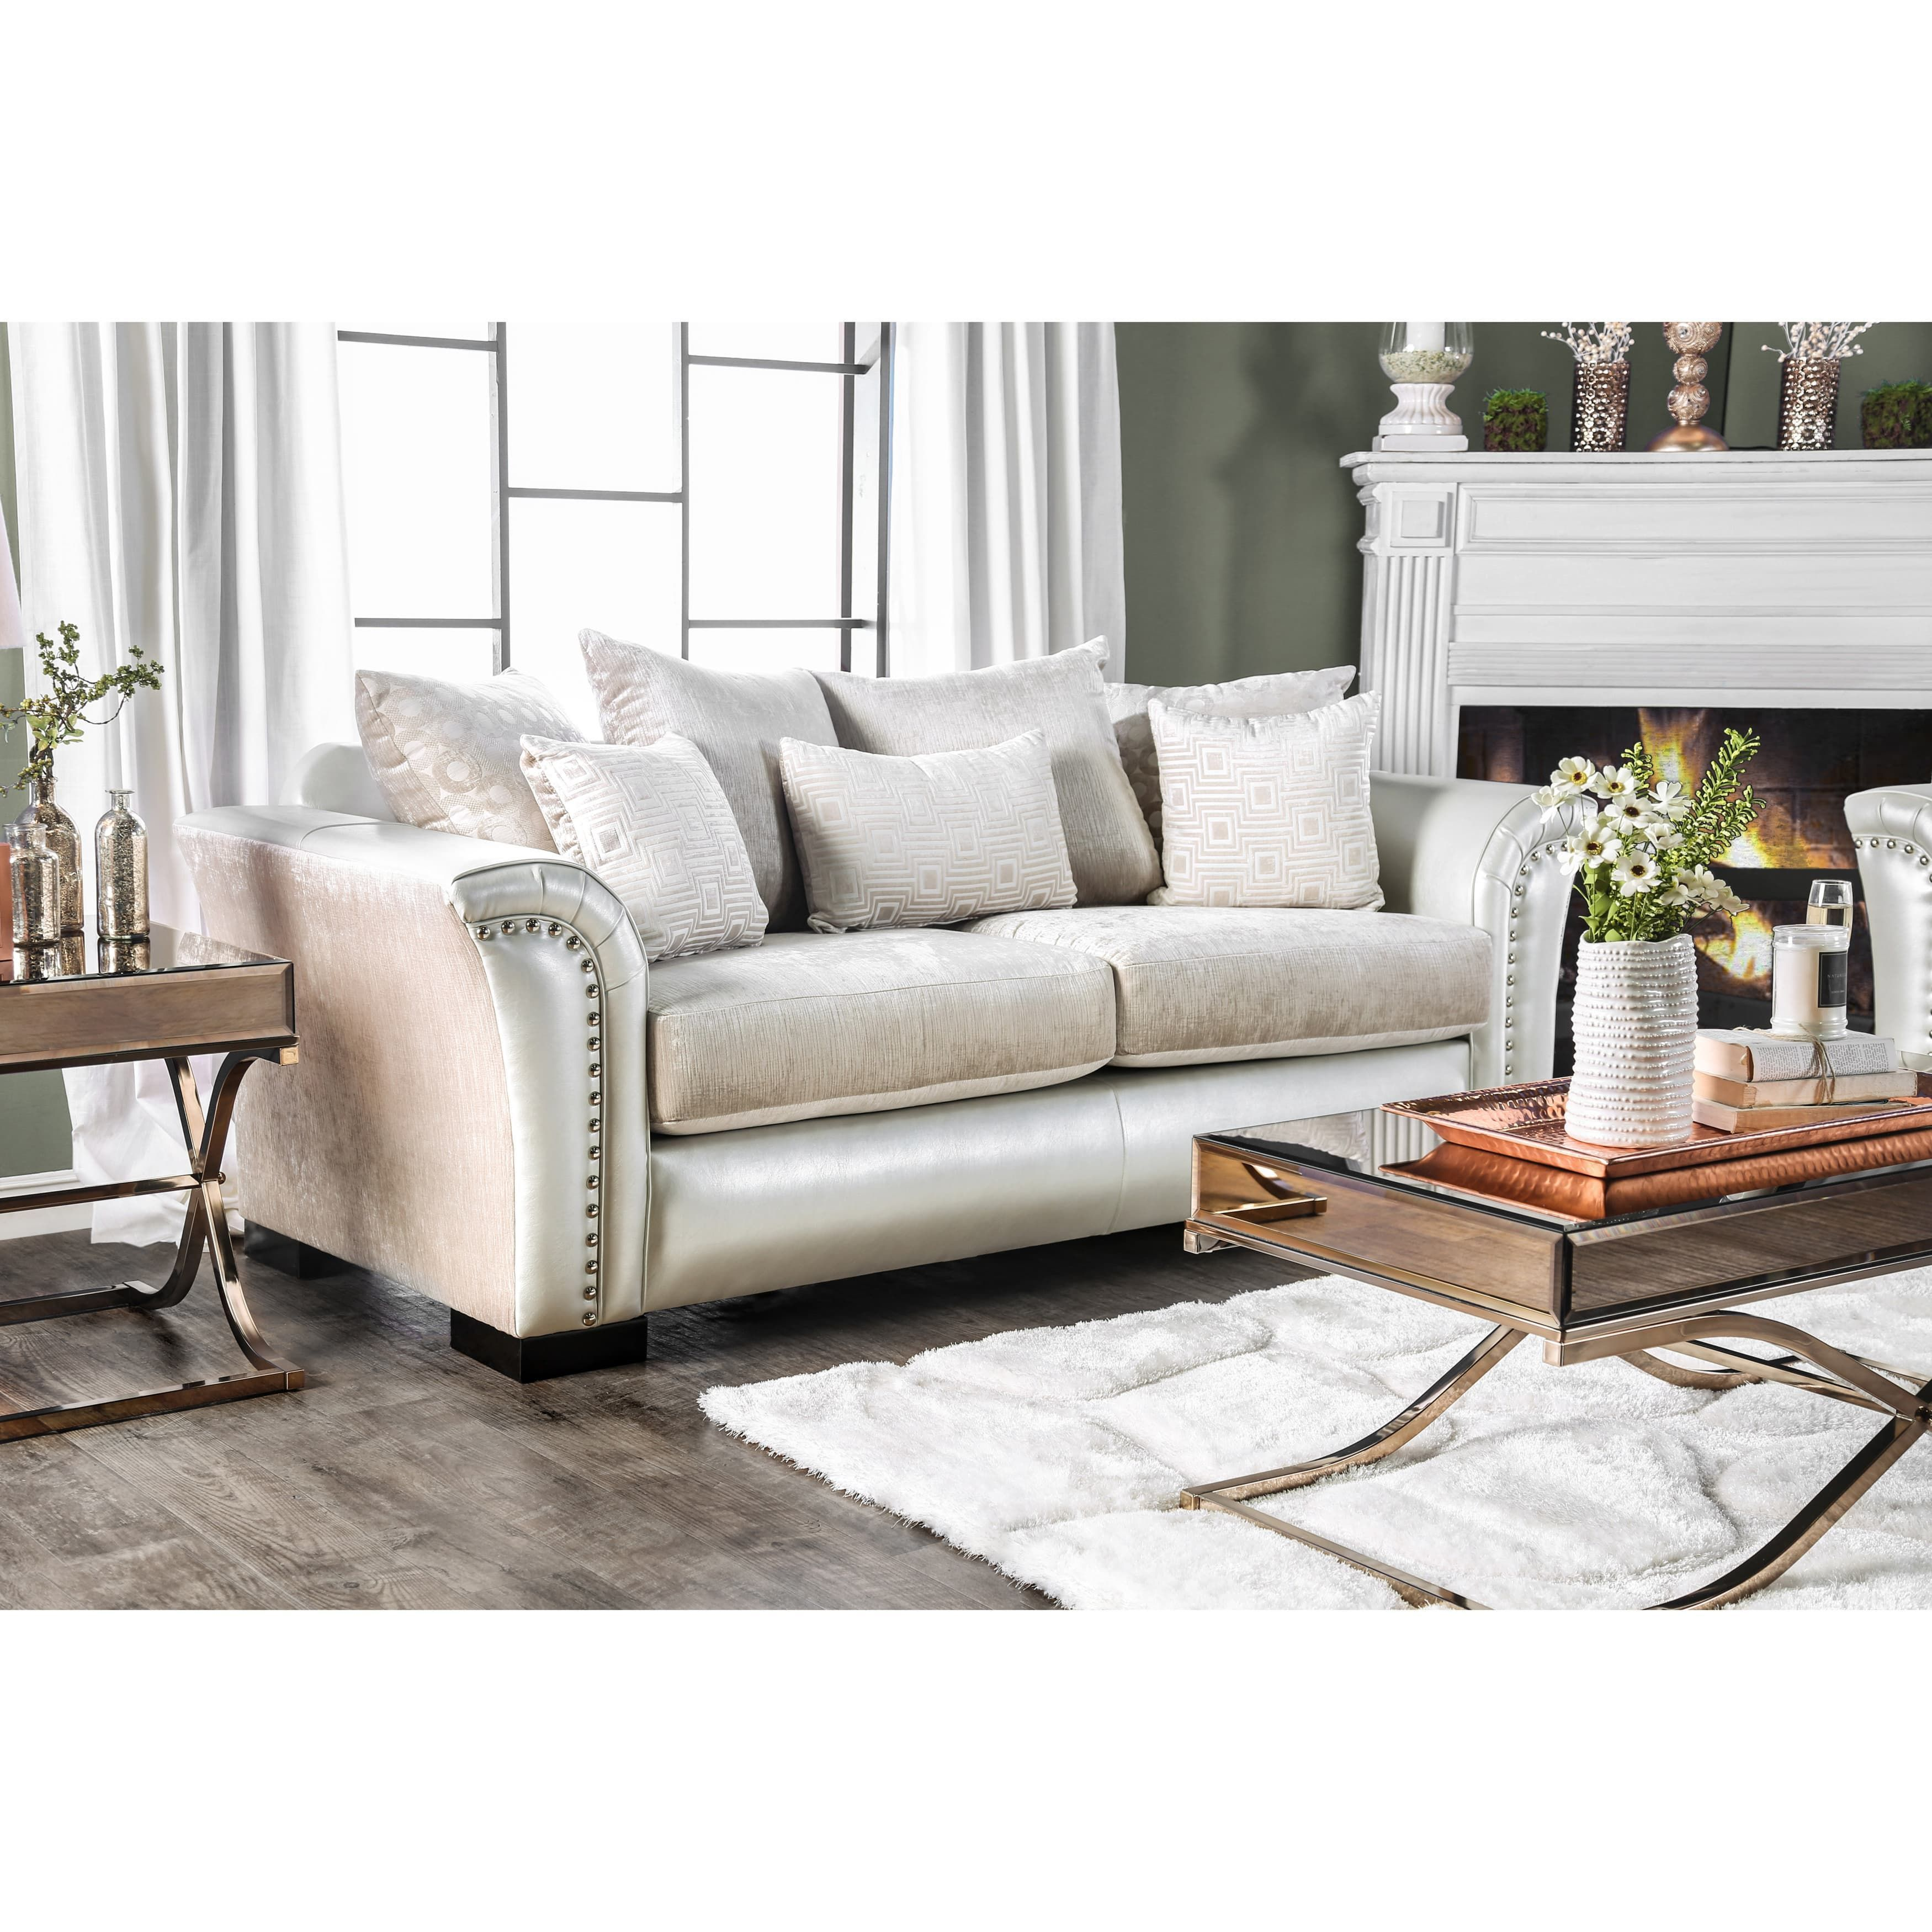 Furniture of America Linwood Classic Contemporary Two-Tone Sofa ...